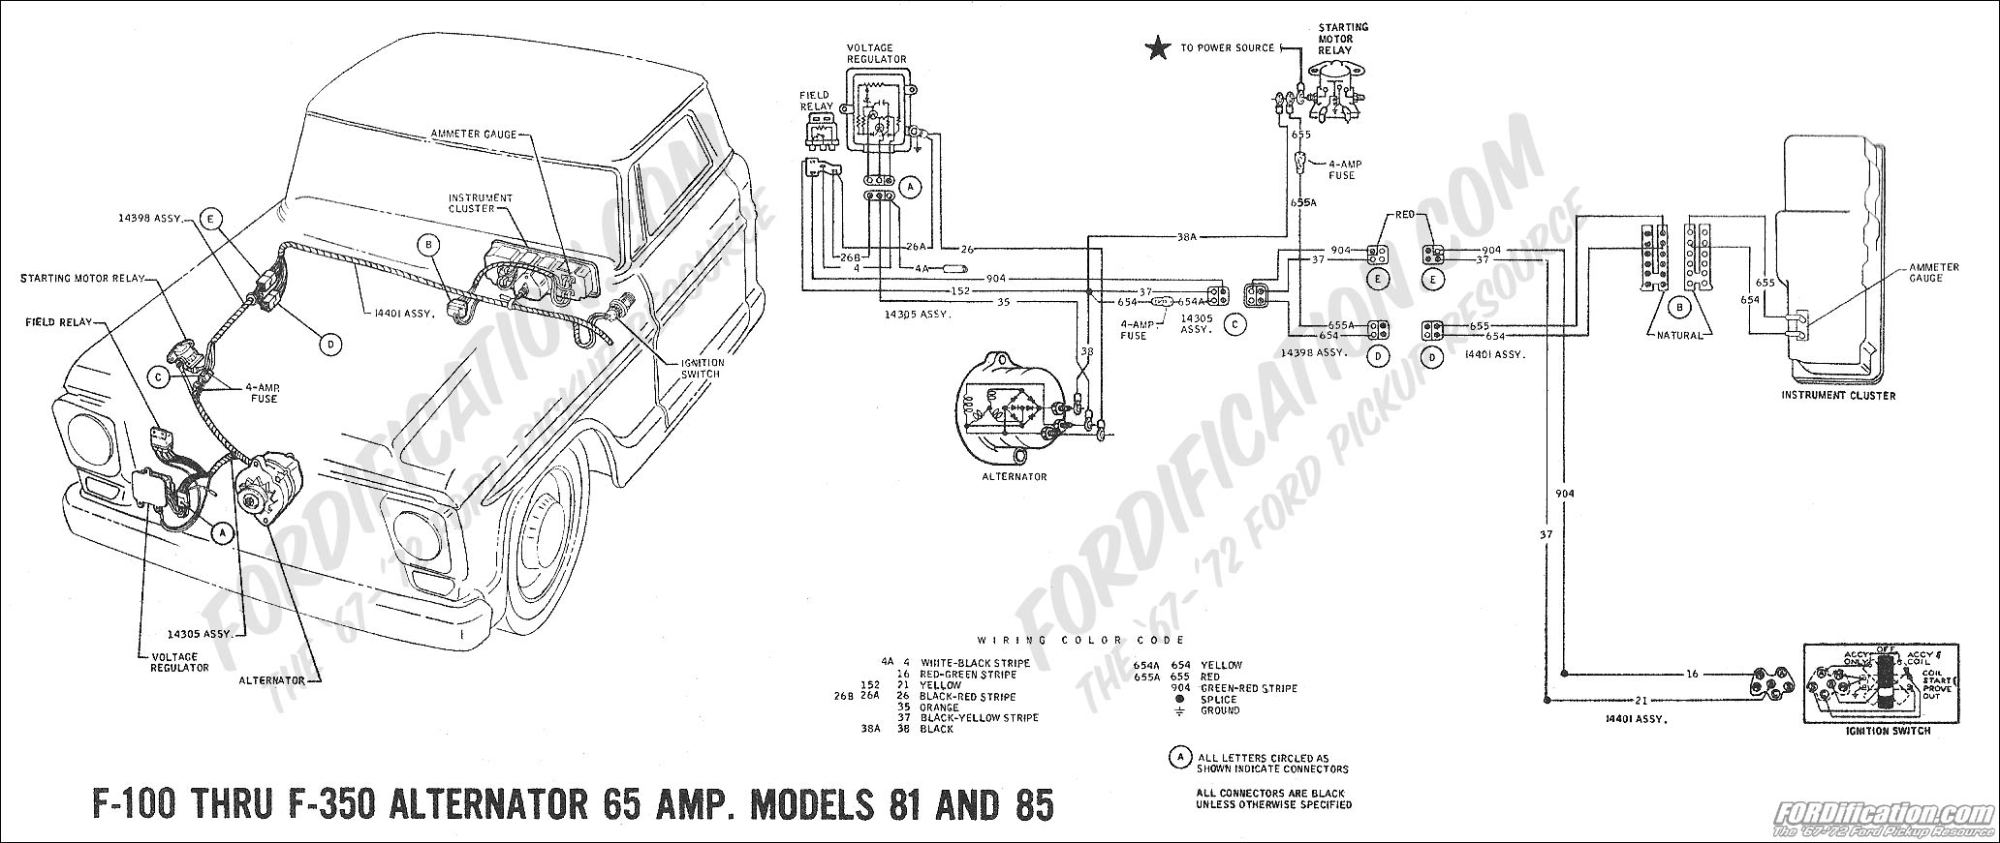 hight resolution of ford 302 alternator wiring diagram wiring diagram repair guides 1987 ford 302 alternator wiring diagram